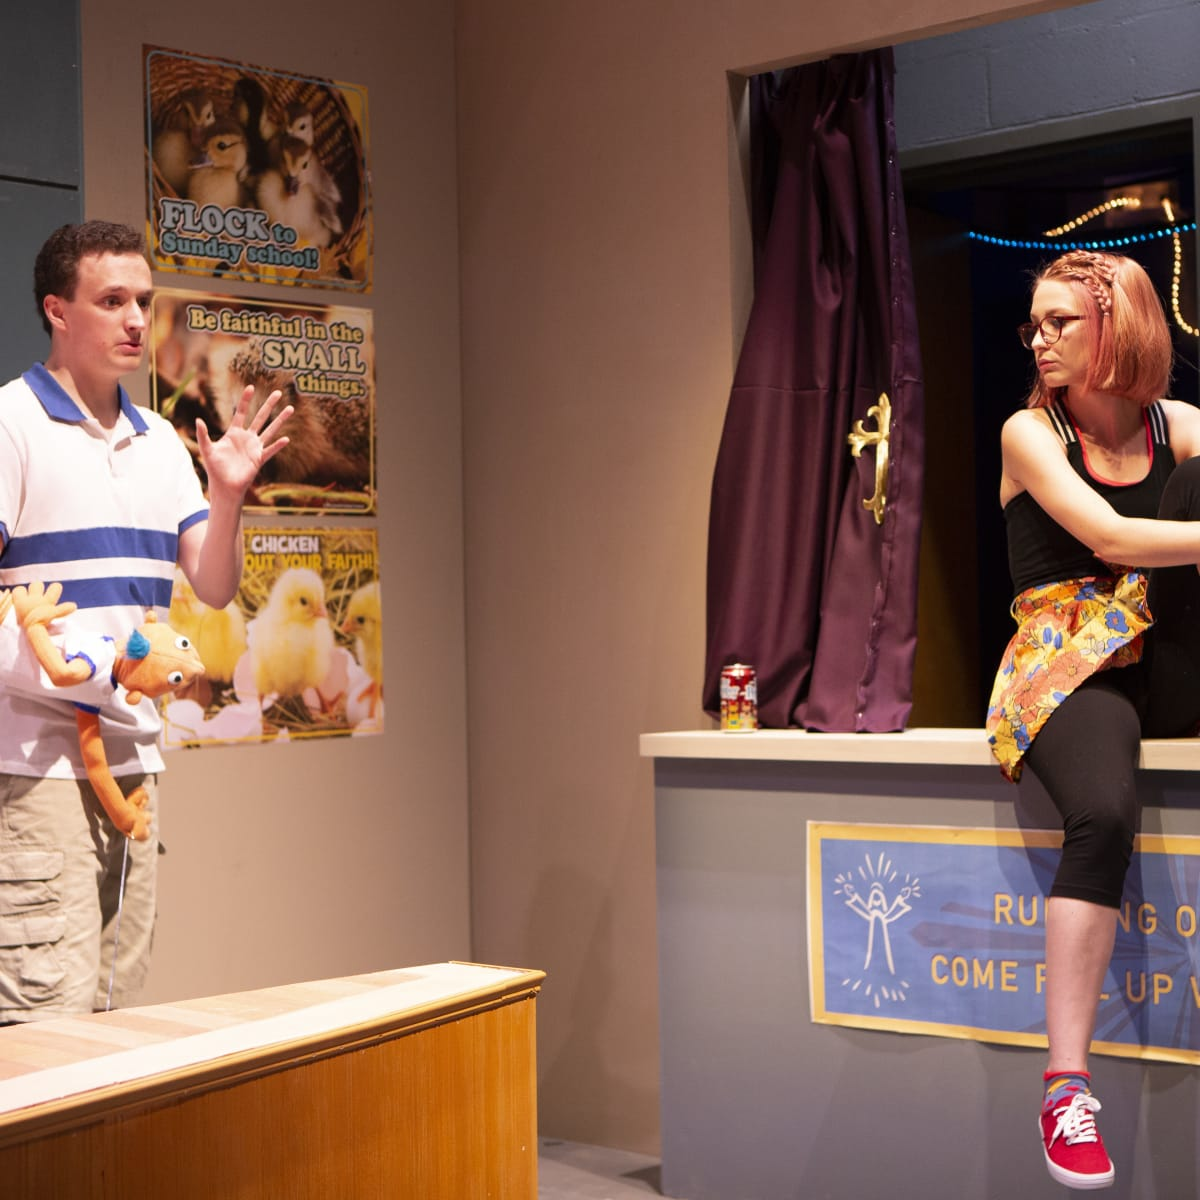 Parker Gray and Debbie Ruegsegger in Hand to God at WaterTower Theatre